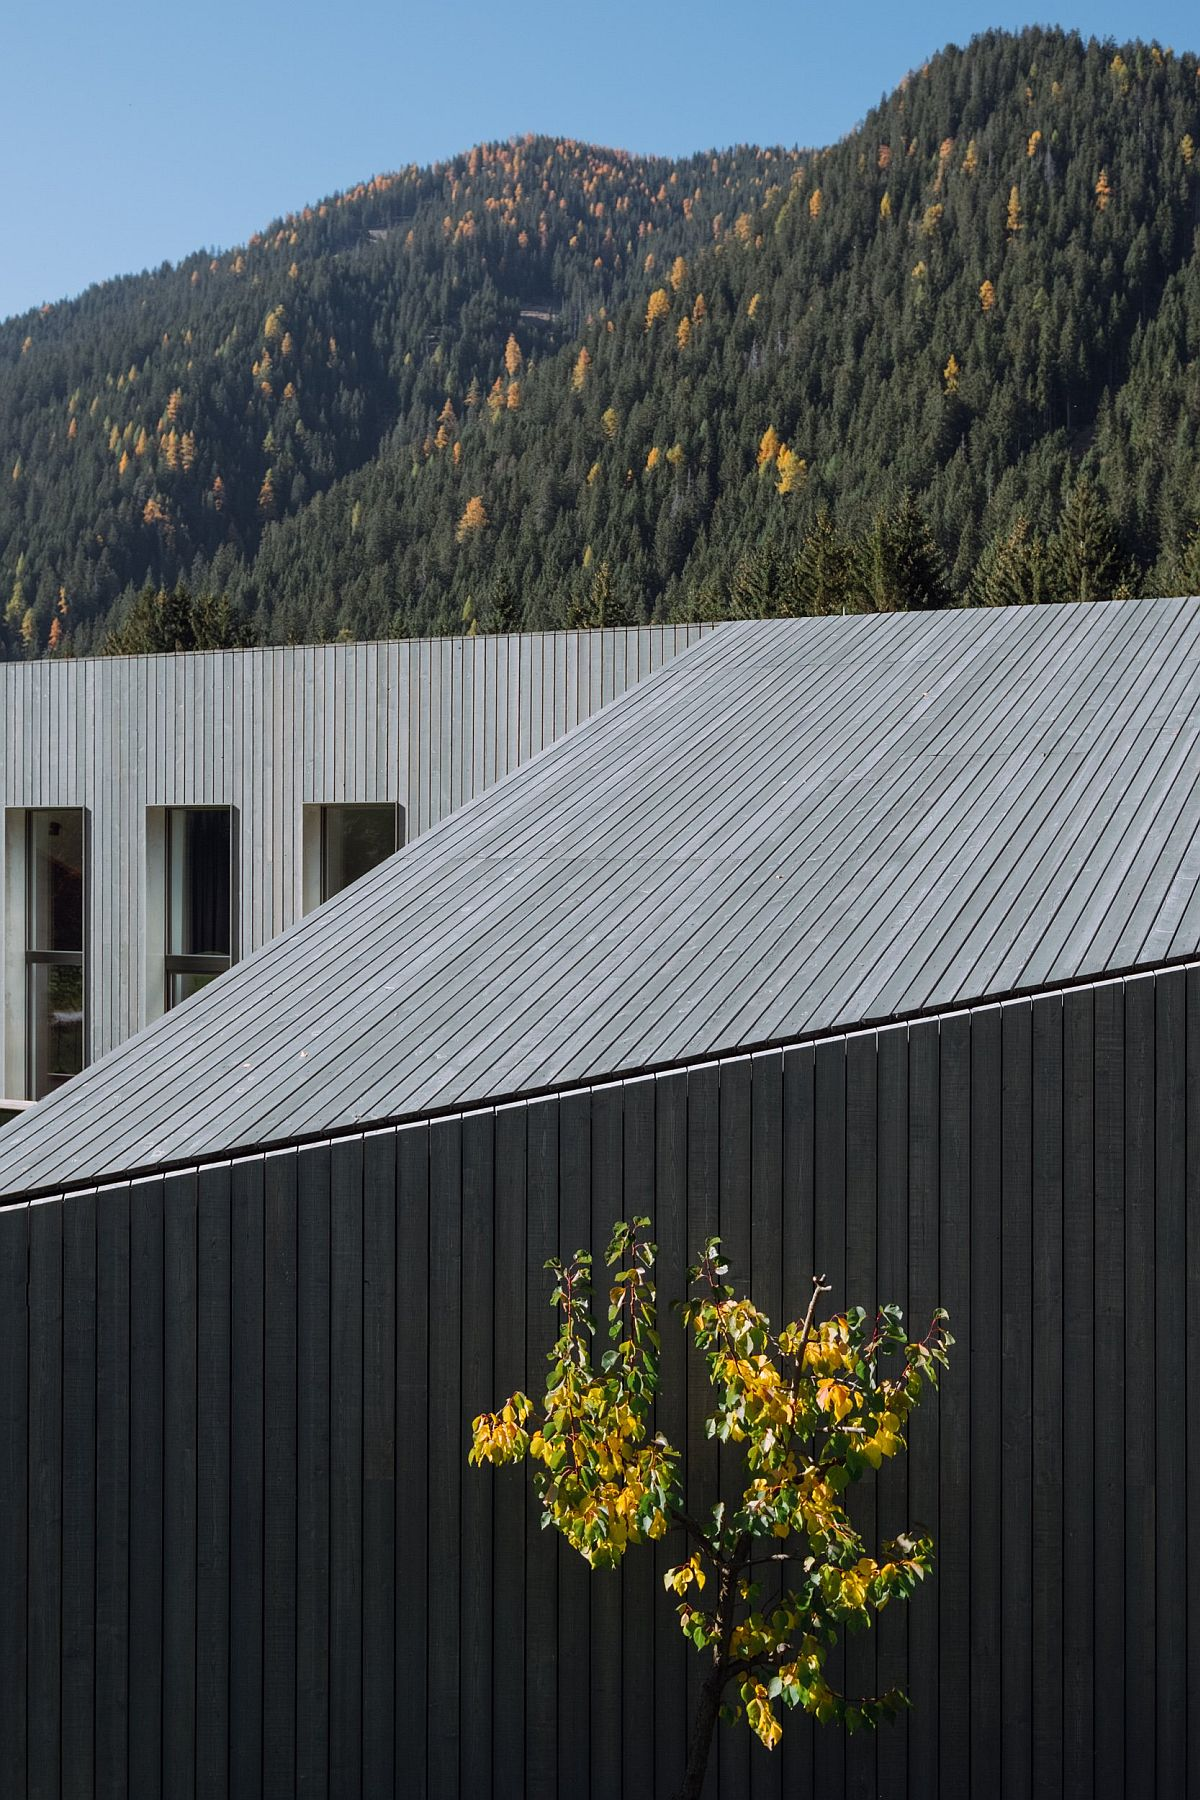 Angular walls and geometric style of the house stands in contrast to the picturesque natural backdrop